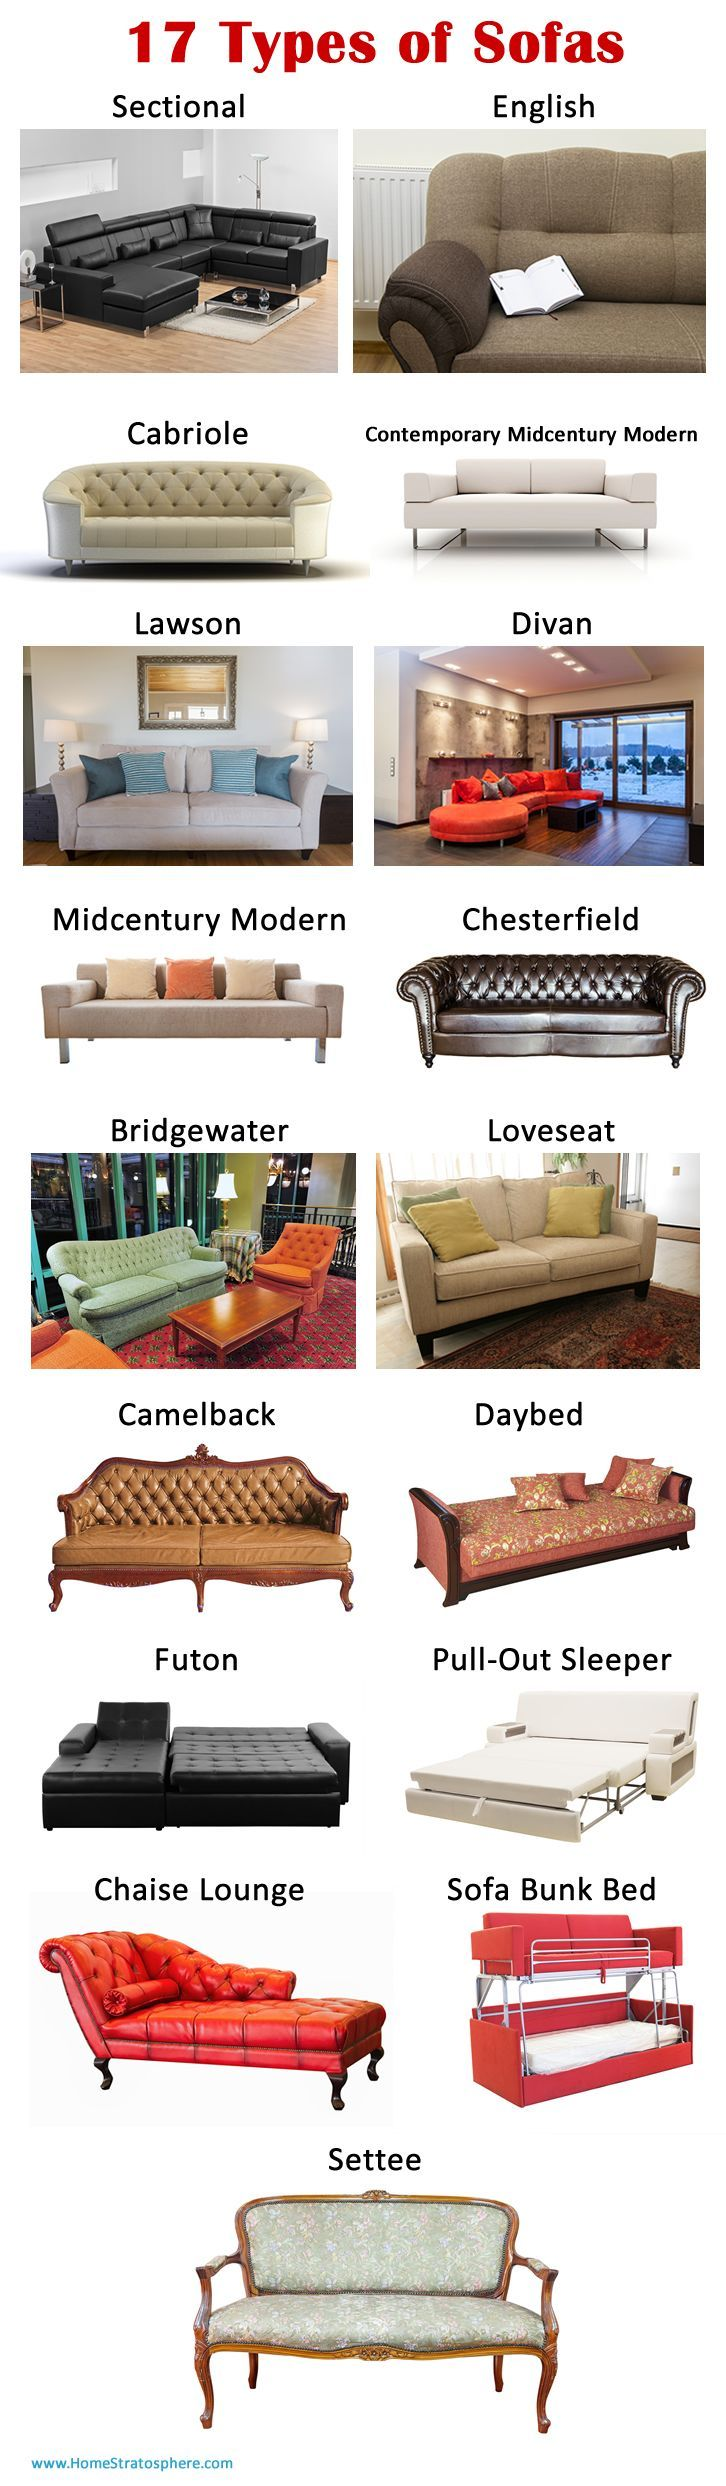 Infographic Setting Out 17 Types Of Sofas Types Of Sofas Sofa